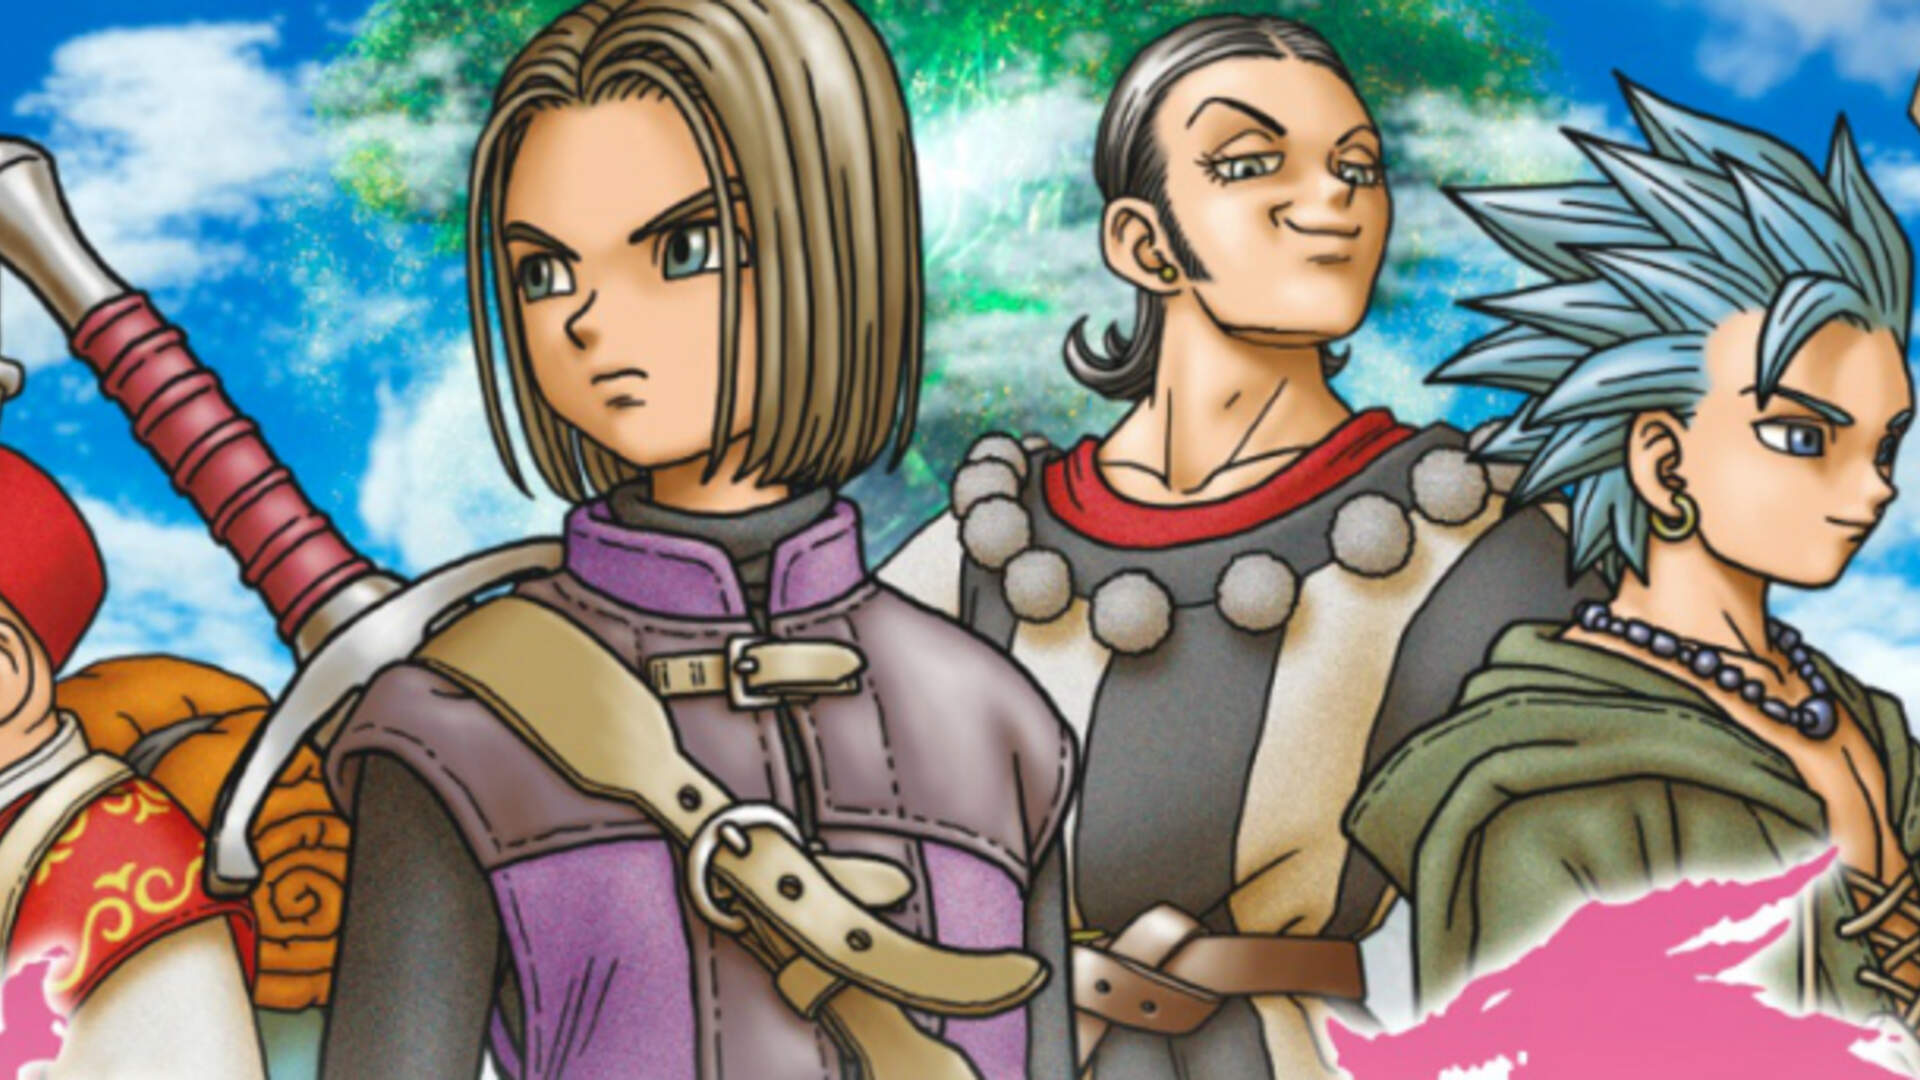 Dragon Quest XI Looks Surprisingly Good on a Handheld PC